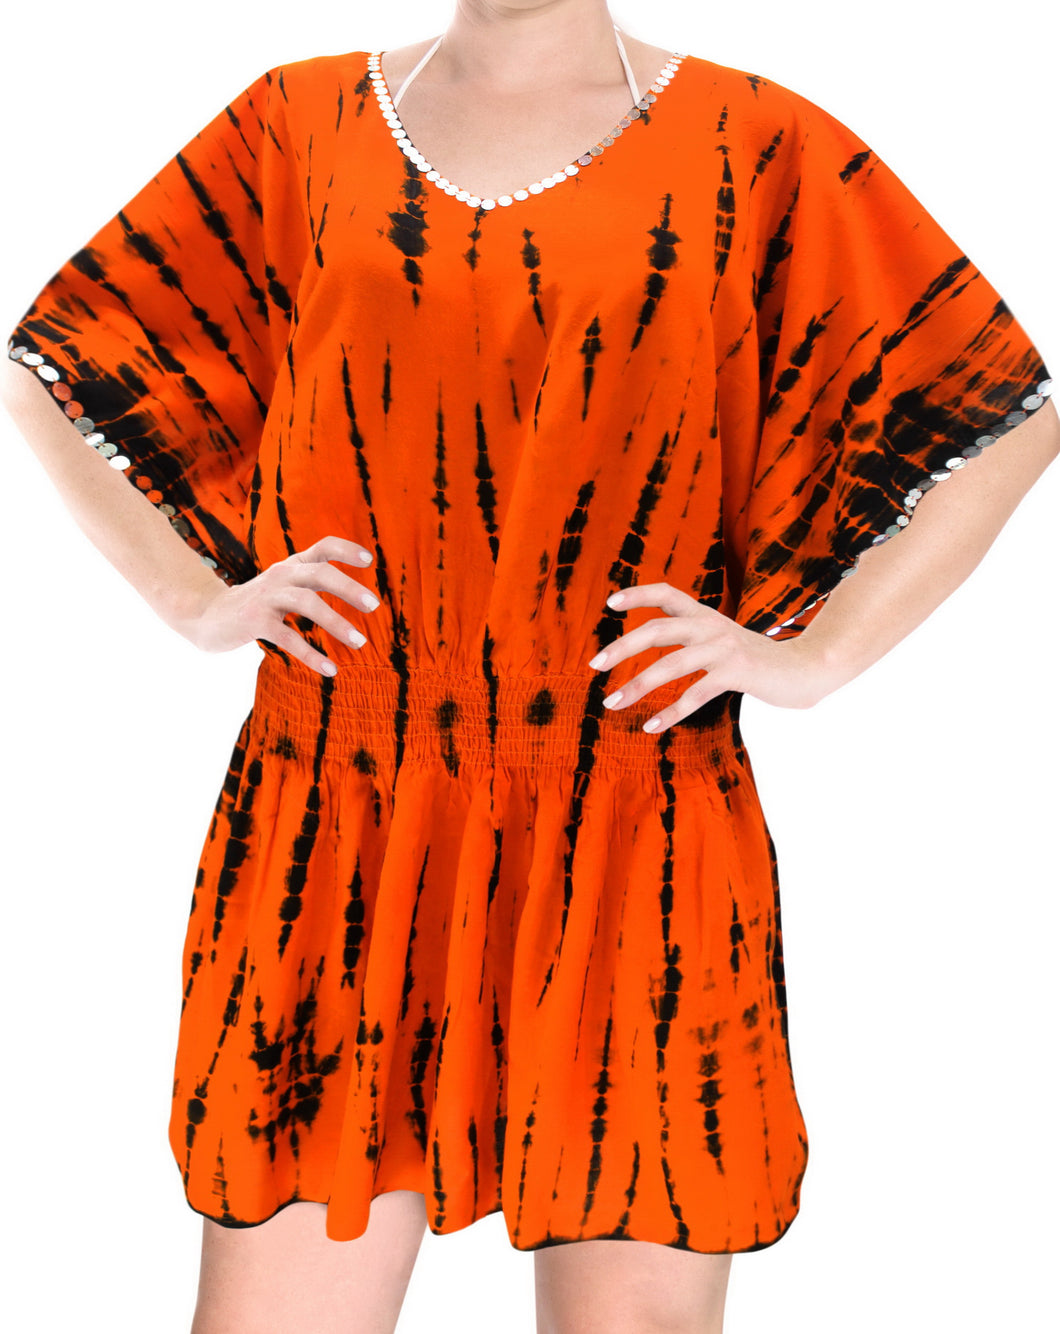 la-leela-bikni-swimwear-cover-ups-rayon-tie_dye-short-caftan-vacation-girls-orange_1430-osfm-14-18-l-xl